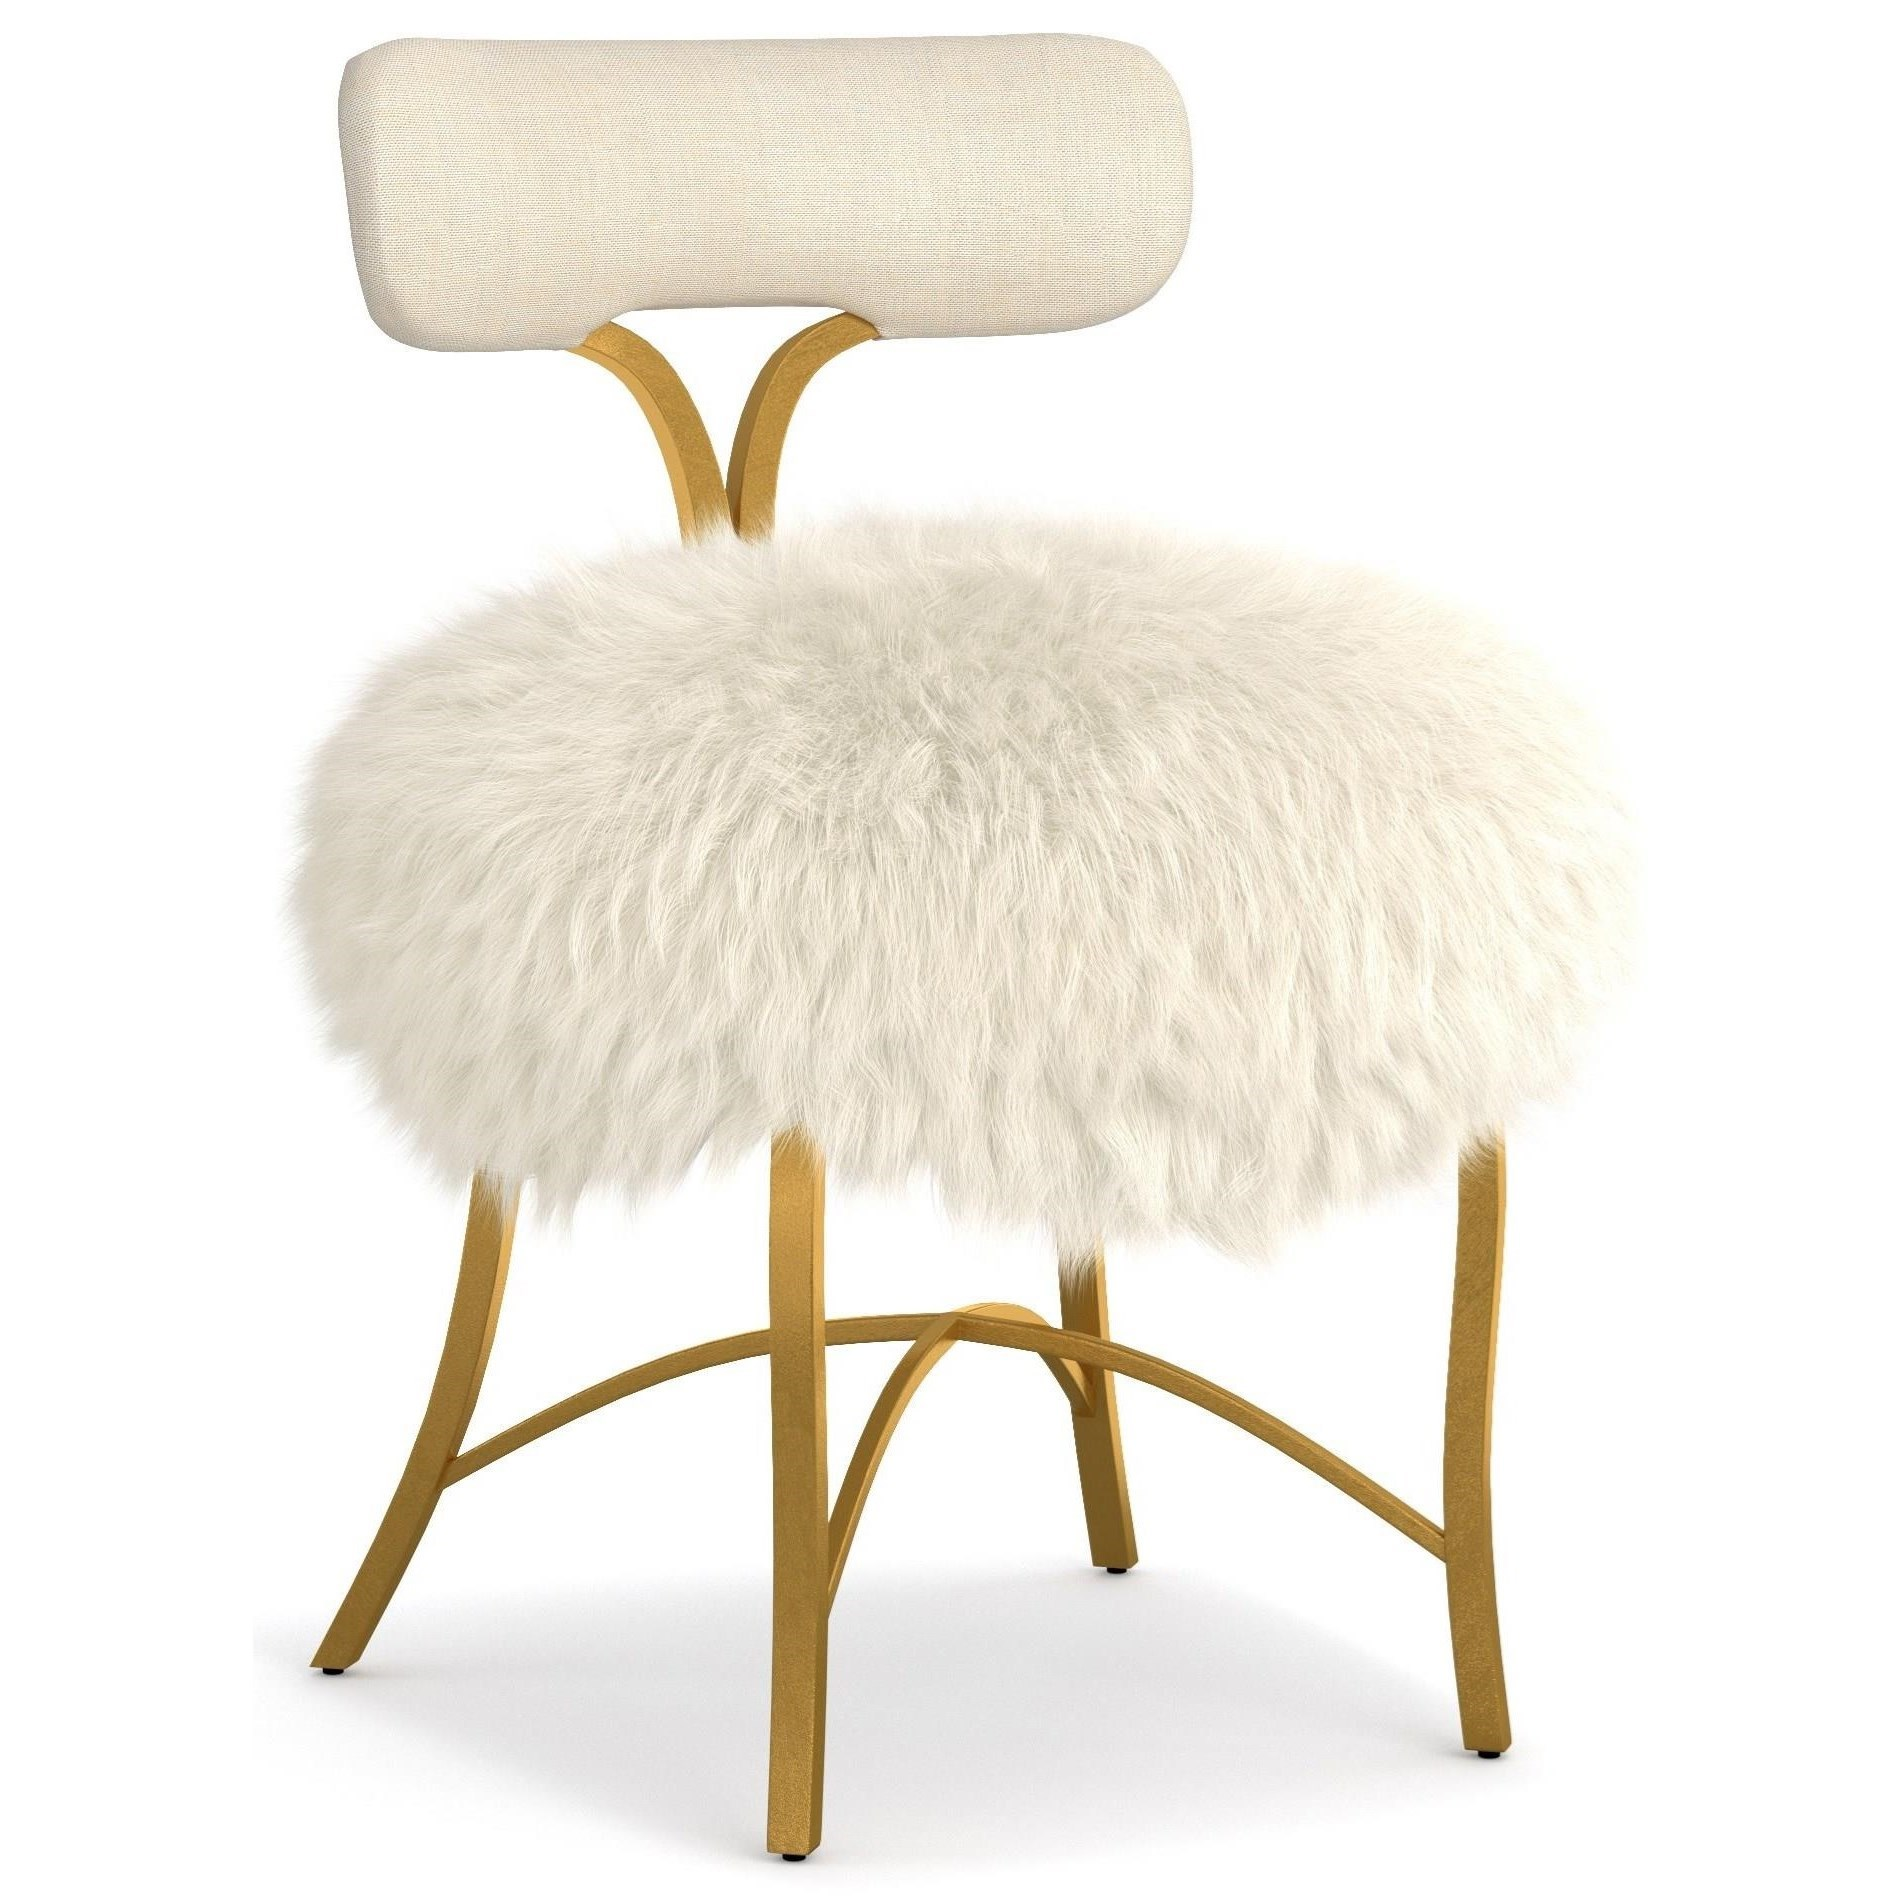 cynthia rowley chairs for sale used ivory chair covers hooker furniture